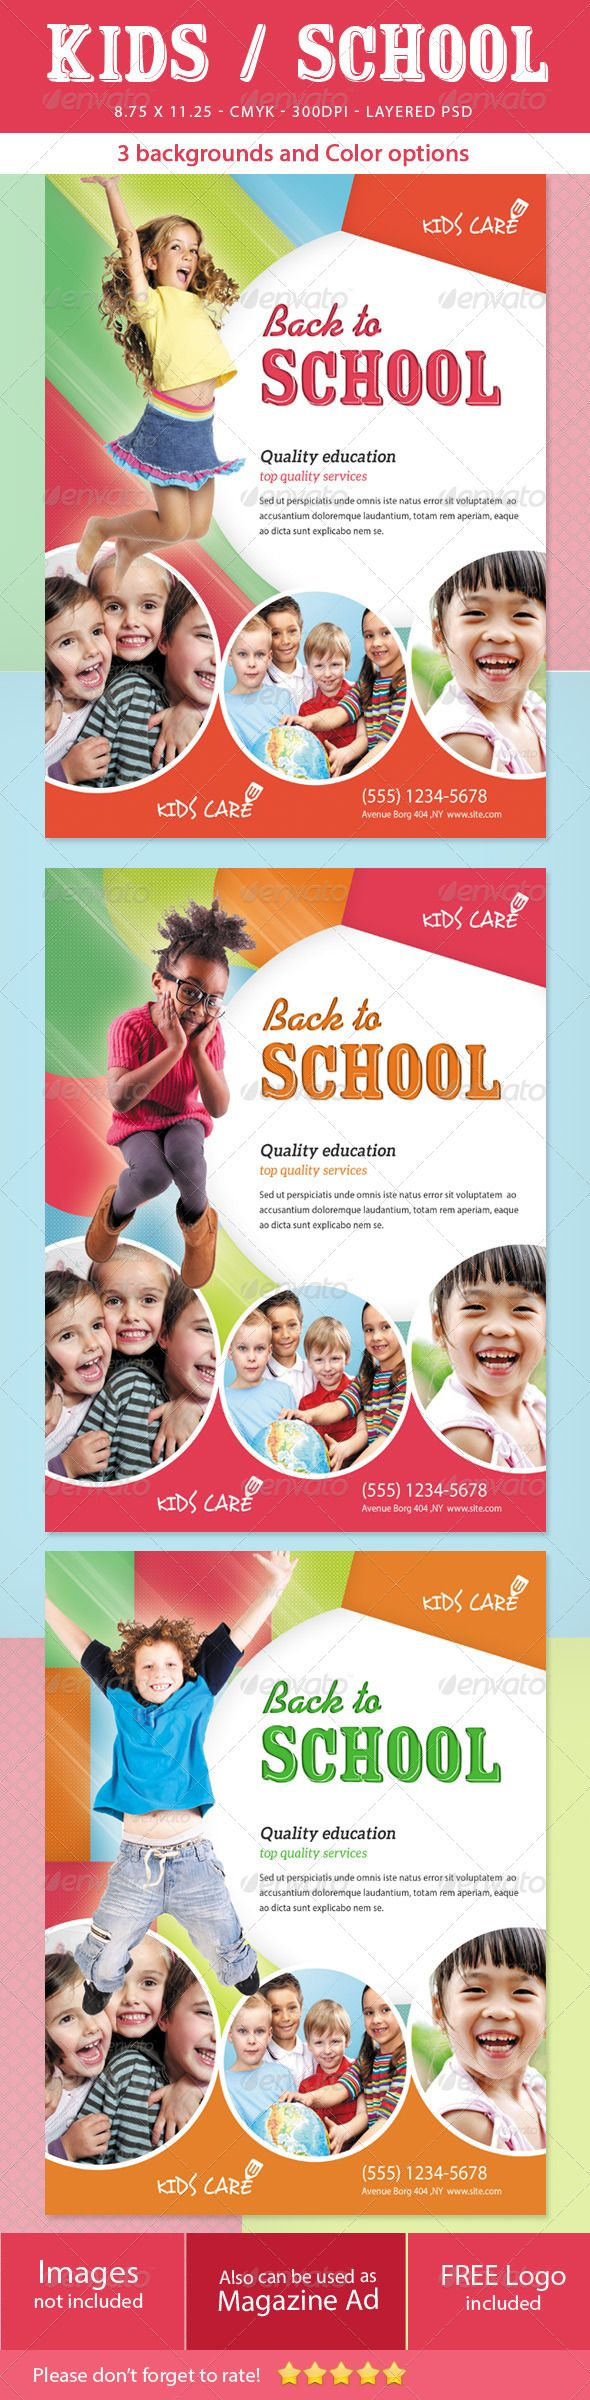 After School Program Flyer Templates | After school programs ...